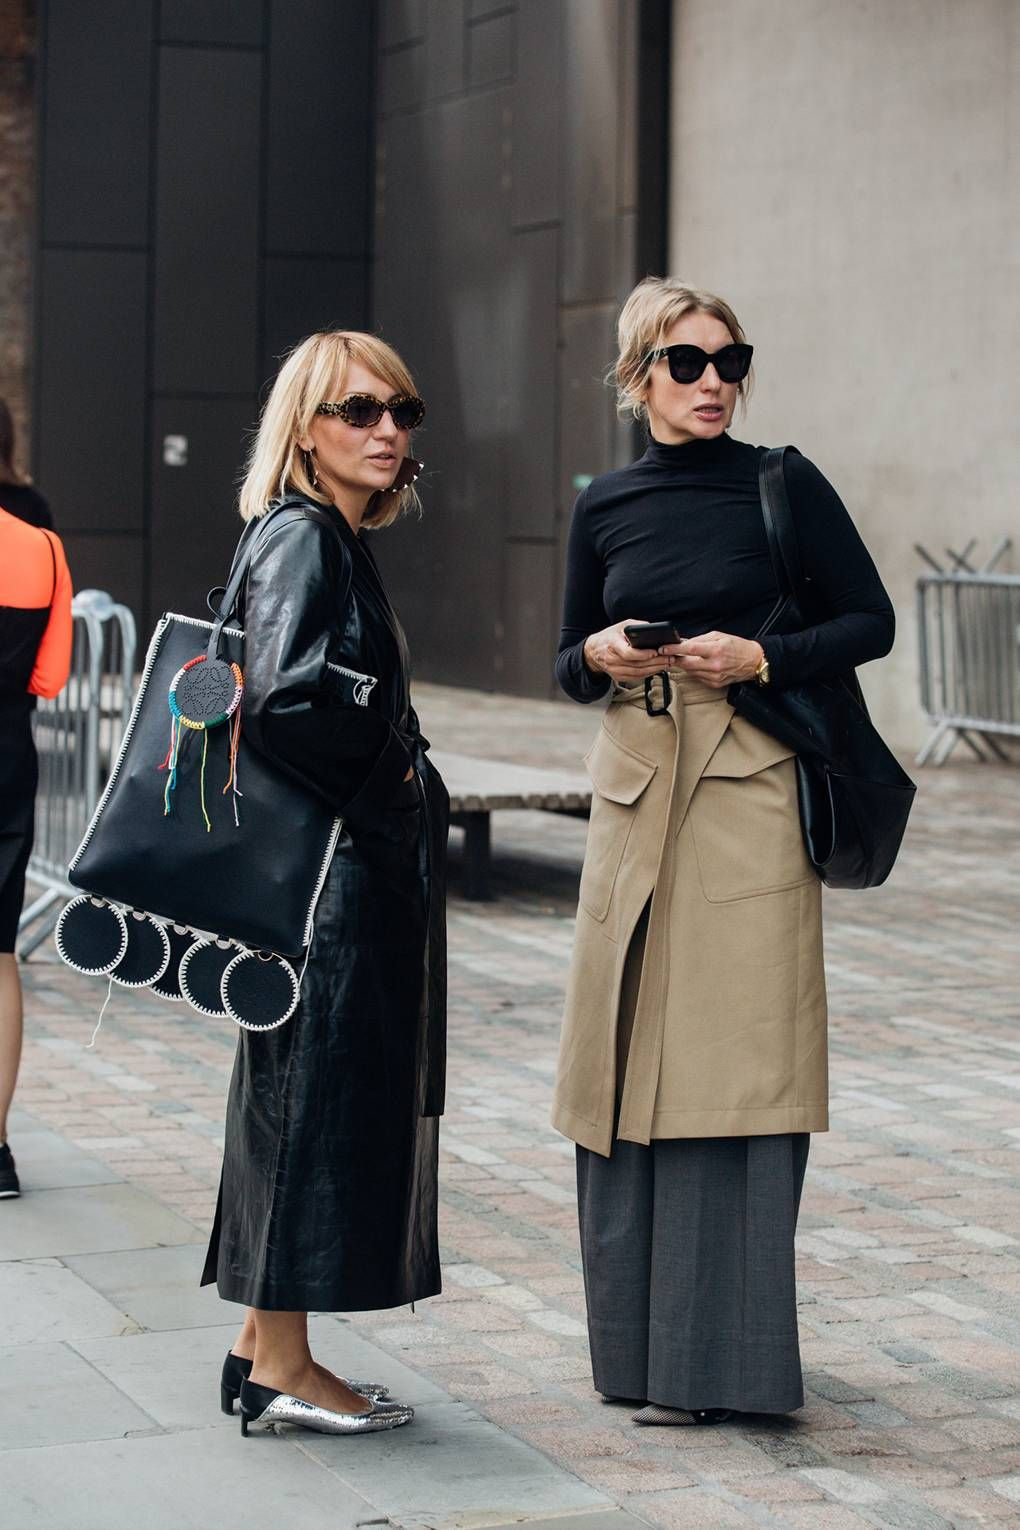 282956cdf4a The Best Street Style Spring 2019 Looks from Fashion Month - FashionFiles